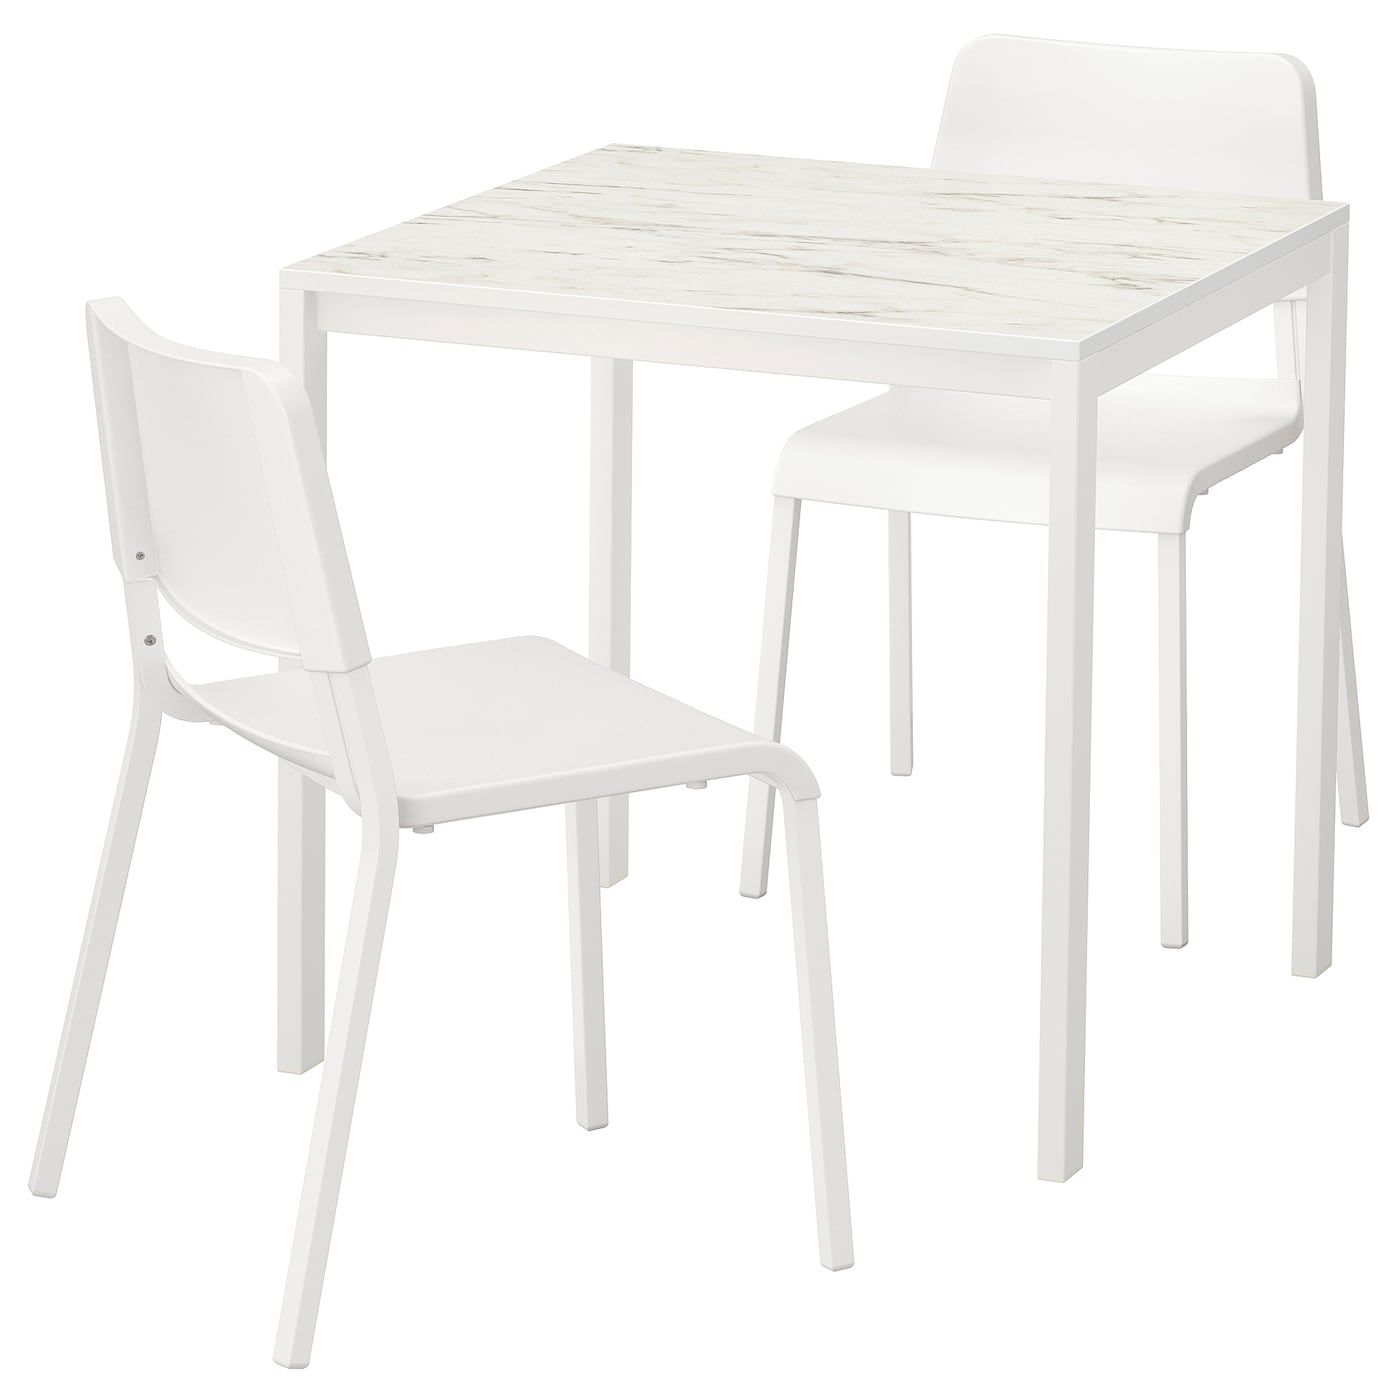 IKEA MELLTORP/TEODORES table and 2 chairs Seats 4.